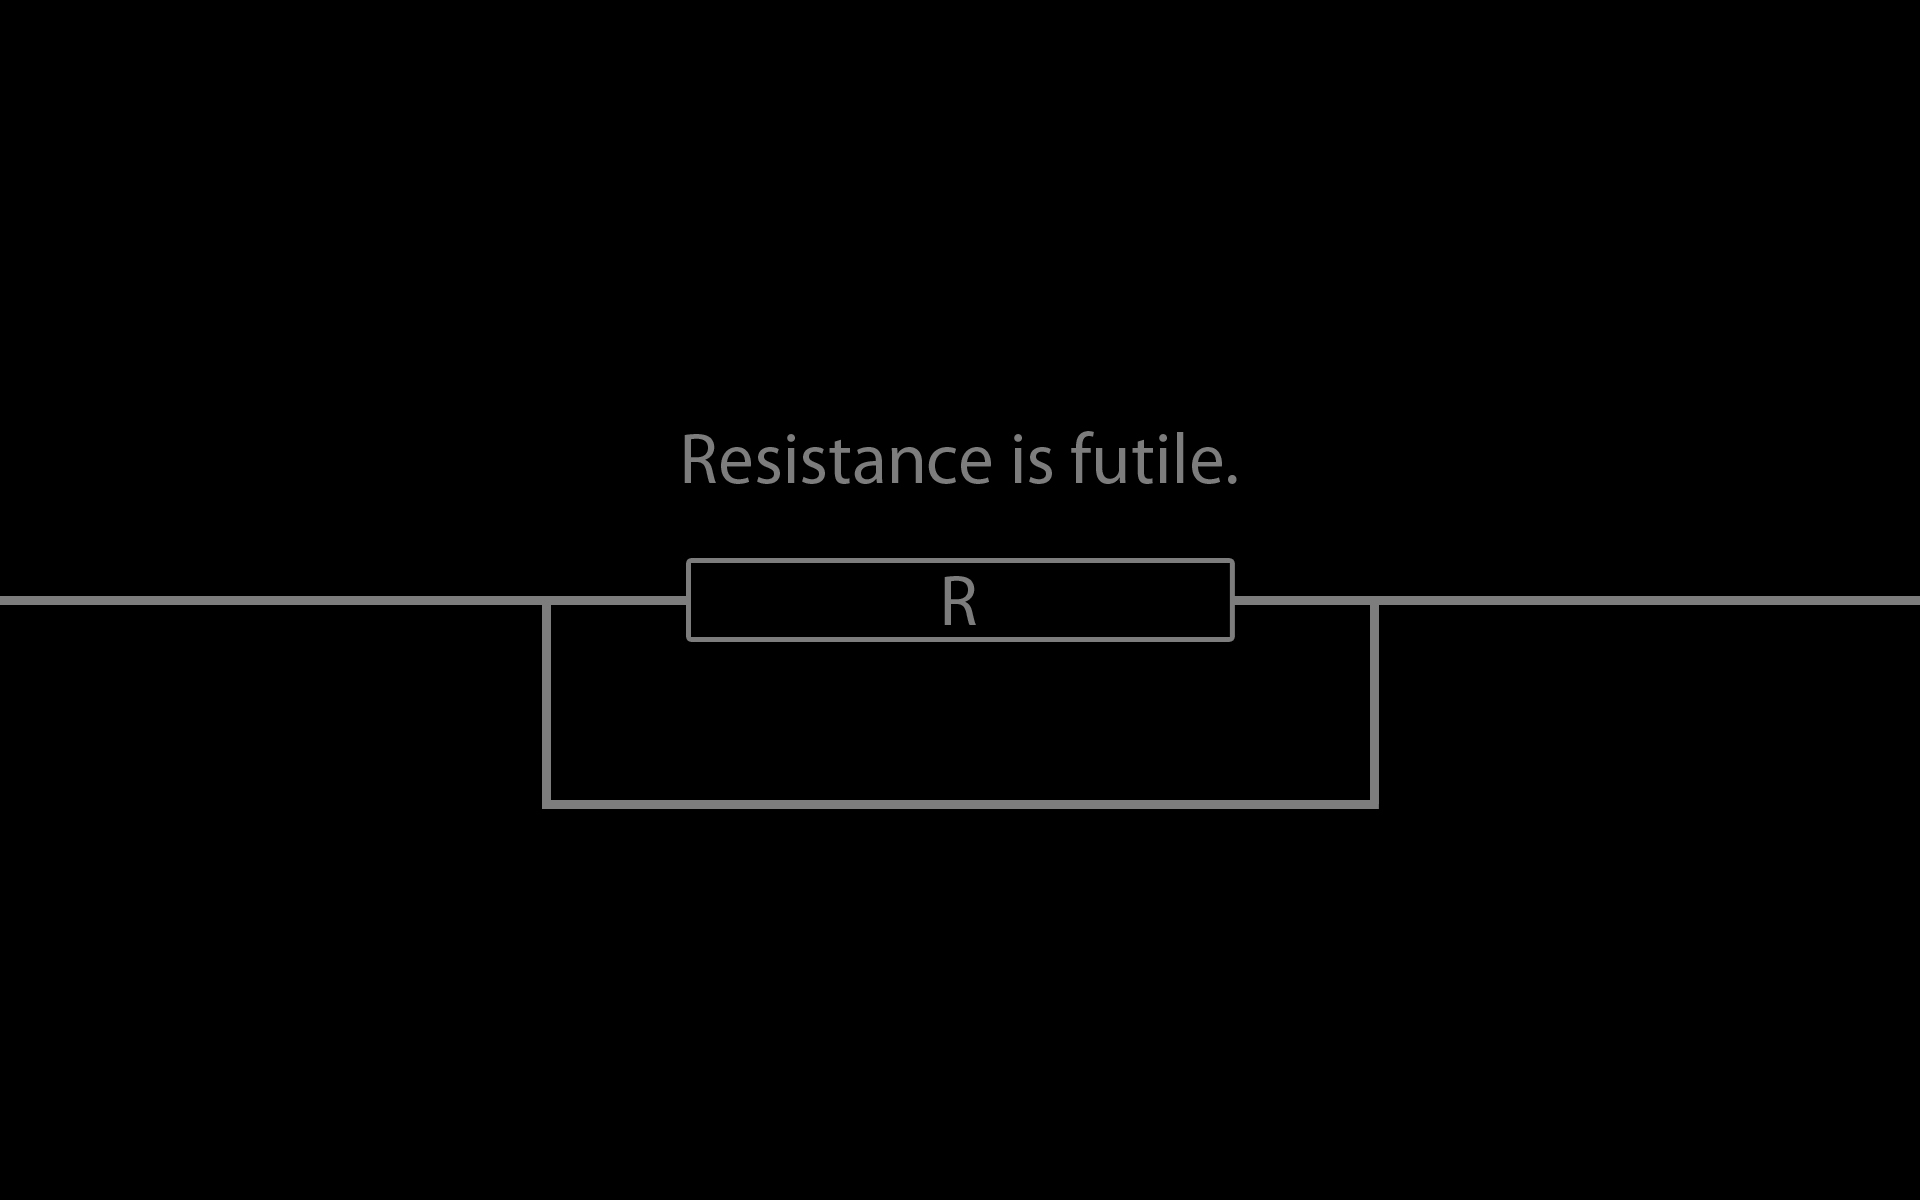 Science resistance electricity HD Wallpaper